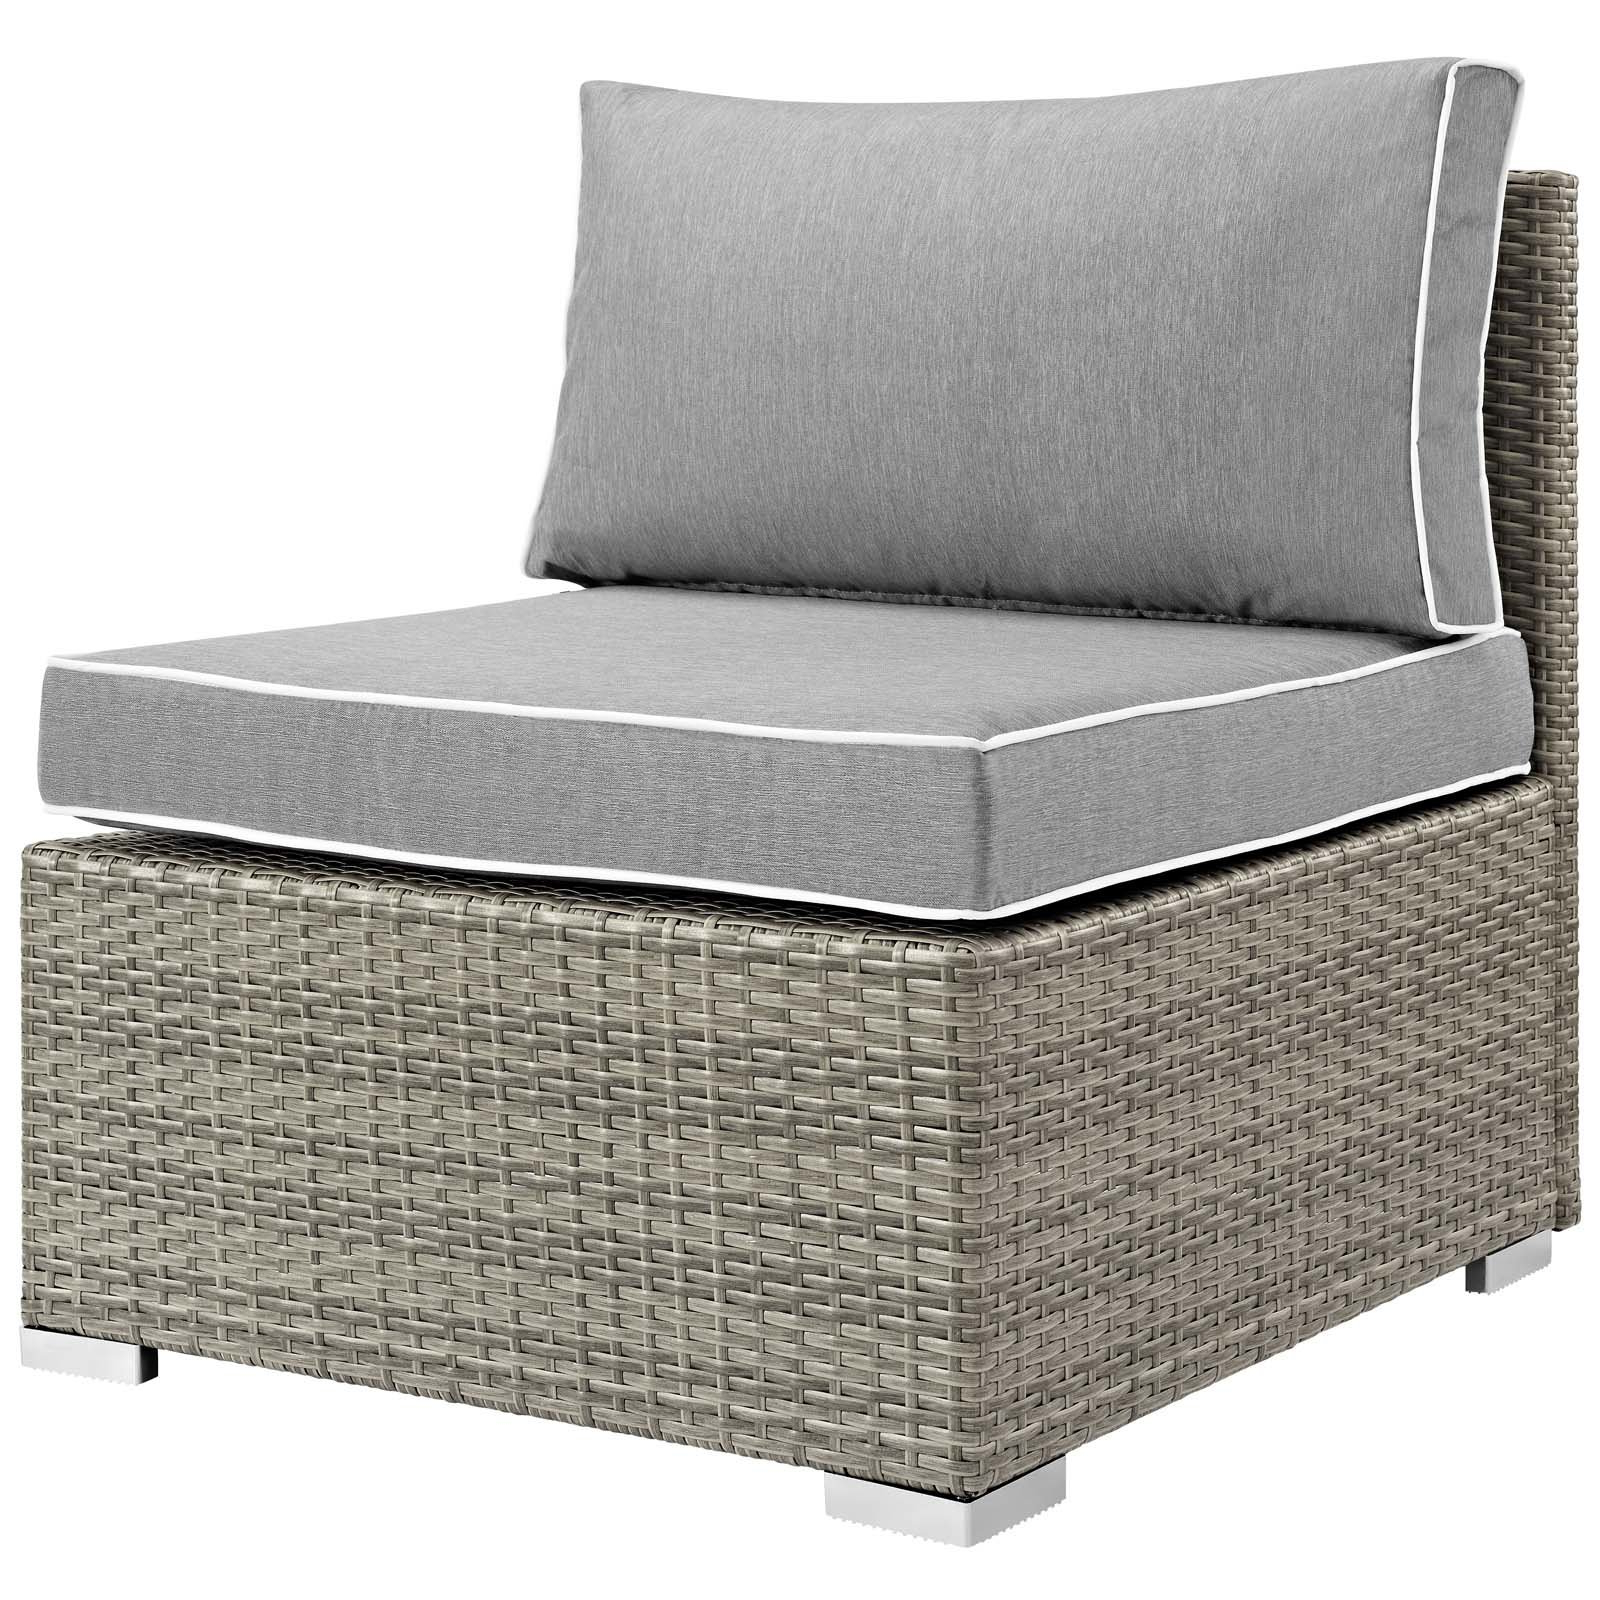 Heinrich Outdoor Armless Patio Chair With Cushion Regarding Fashionable Stapleton Wicker Resin Patio Sofas With Cushions (View 6 of 20)